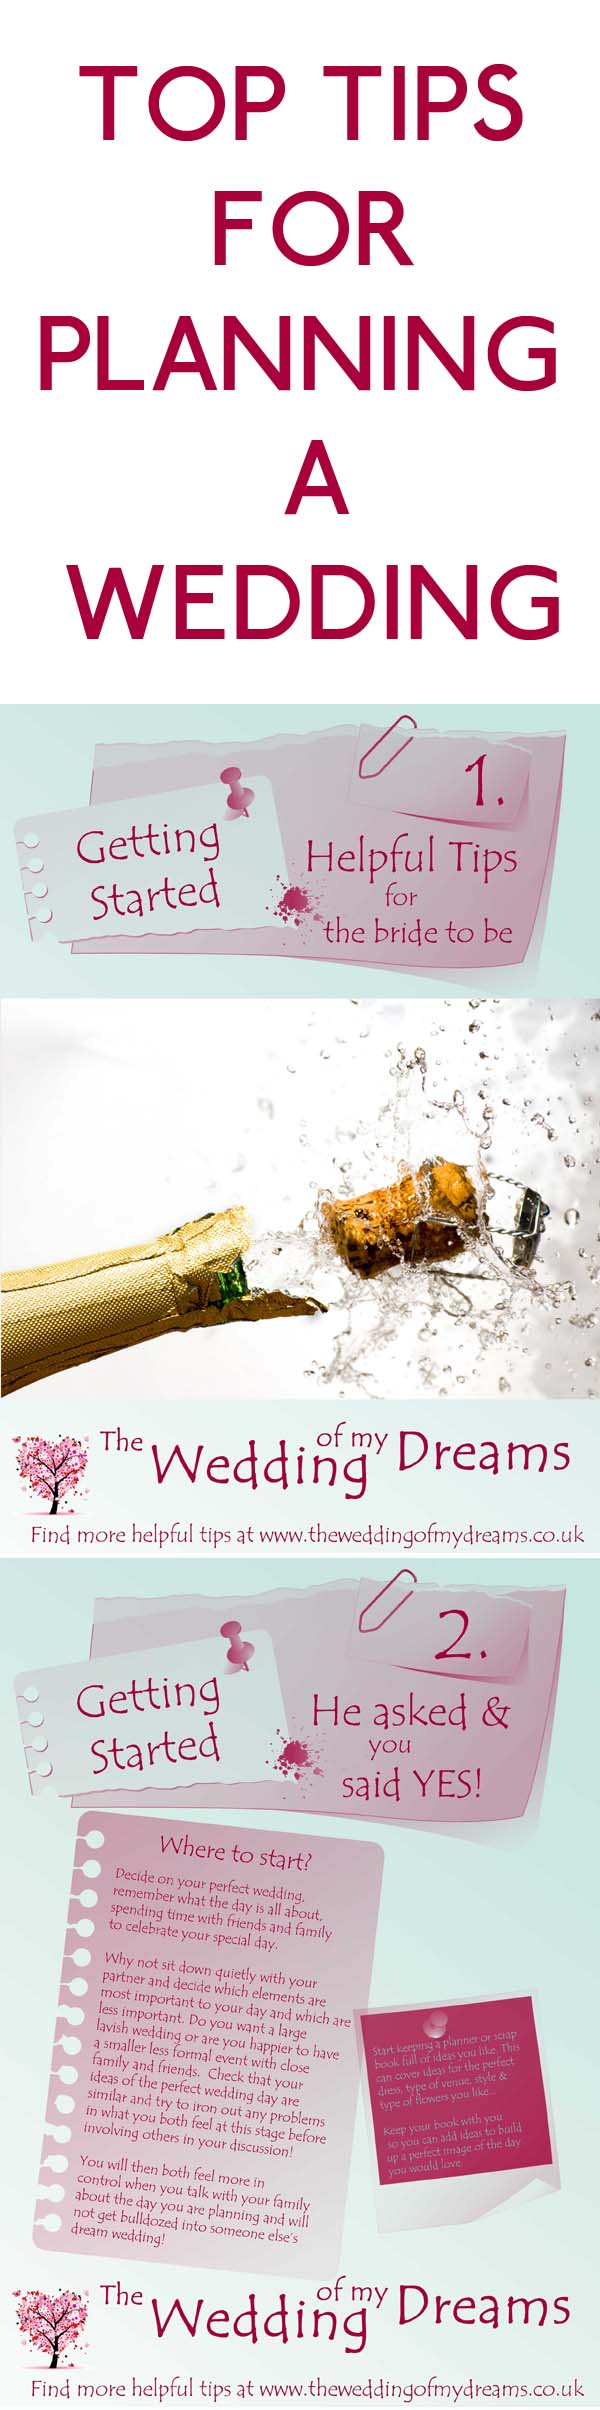 TOP TIPS FOR PLANNING A WEDDING